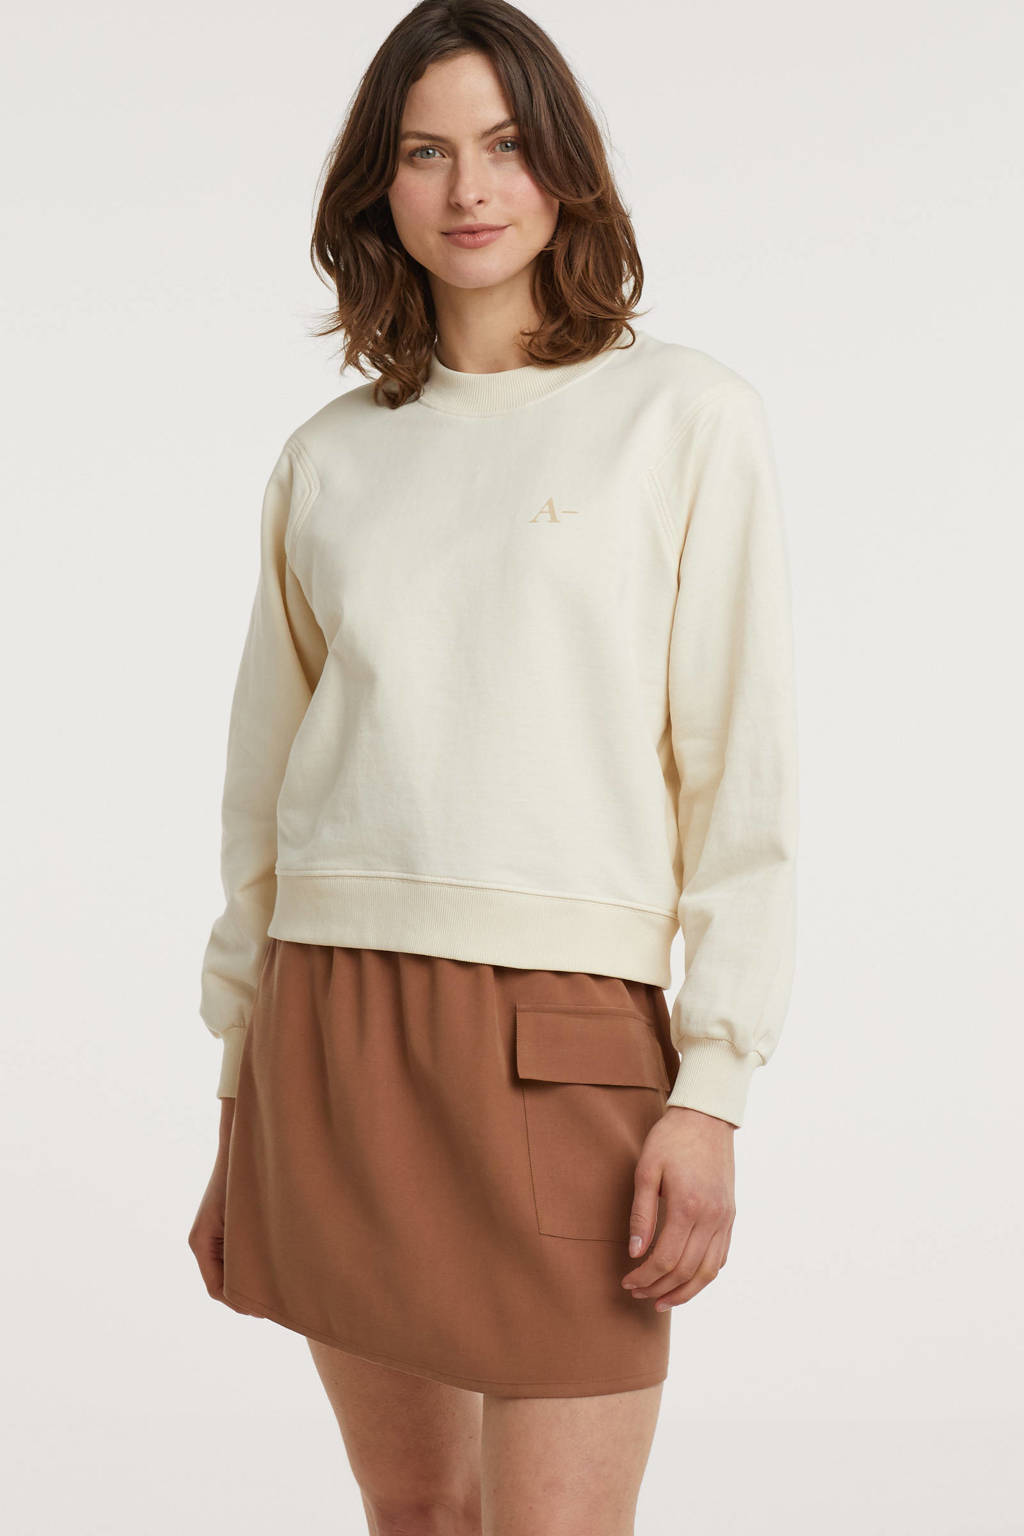 Another-Label trui A' beige, Beige